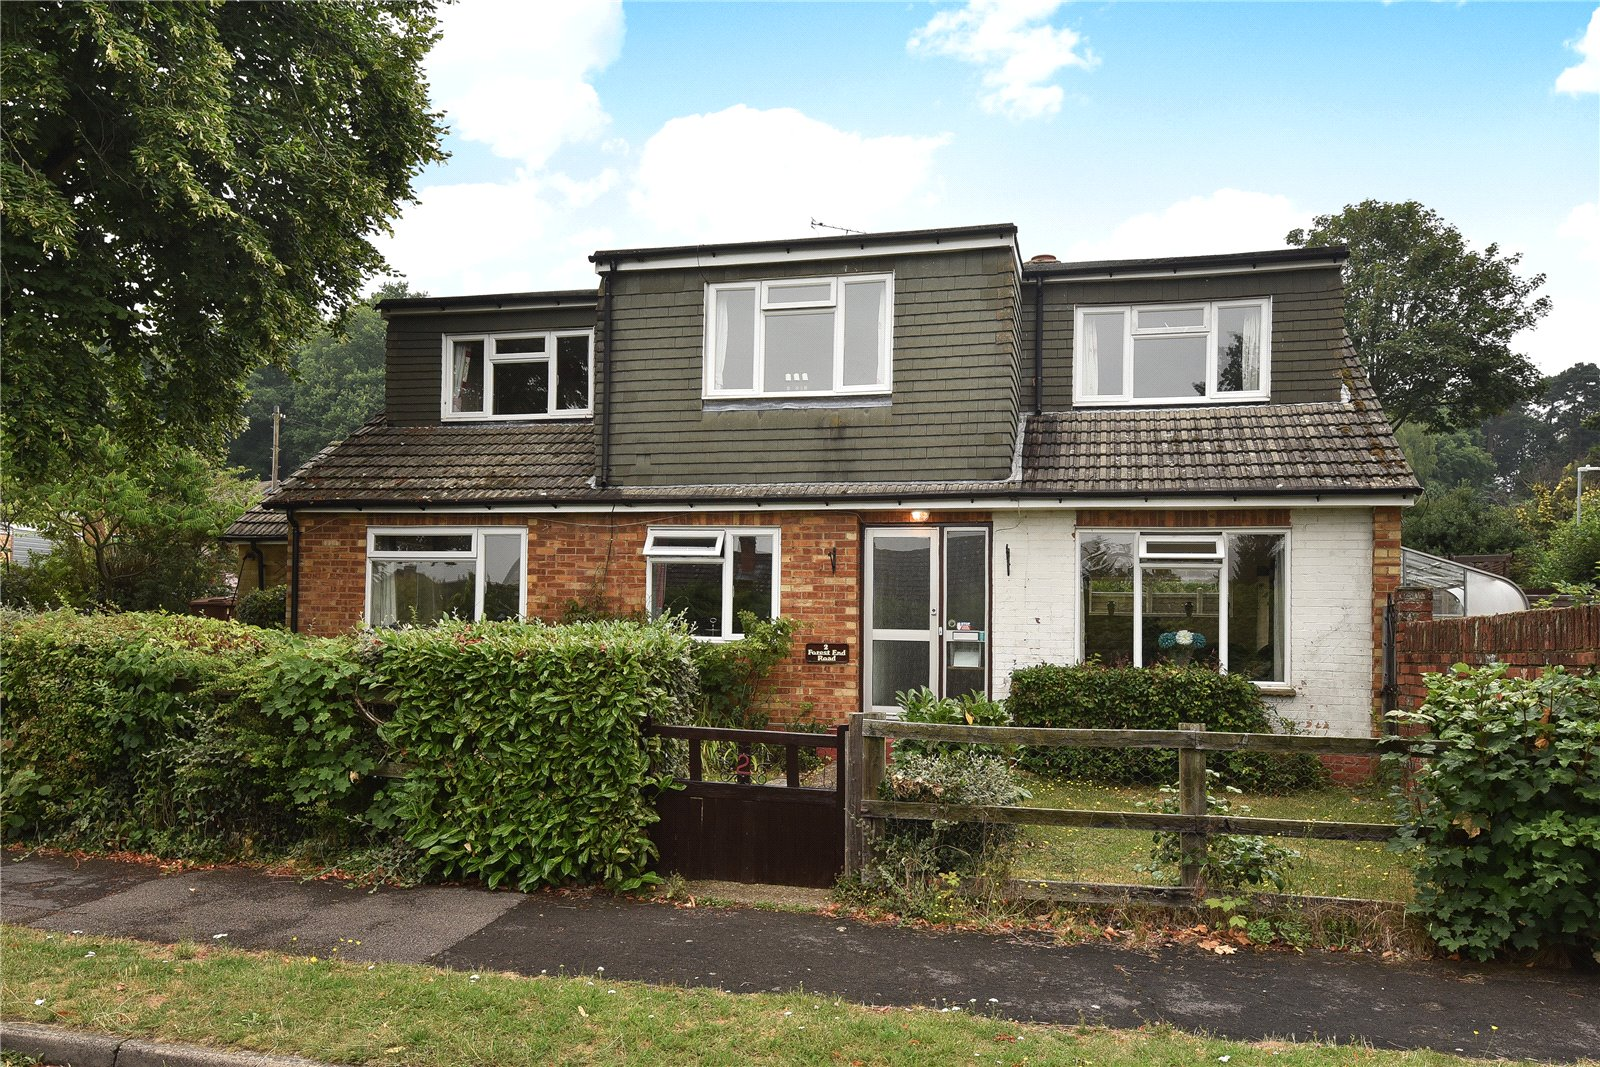 4 Bedrooms Detached House for sale in Forest End Road, Sandhurst, Berkshire, GU47